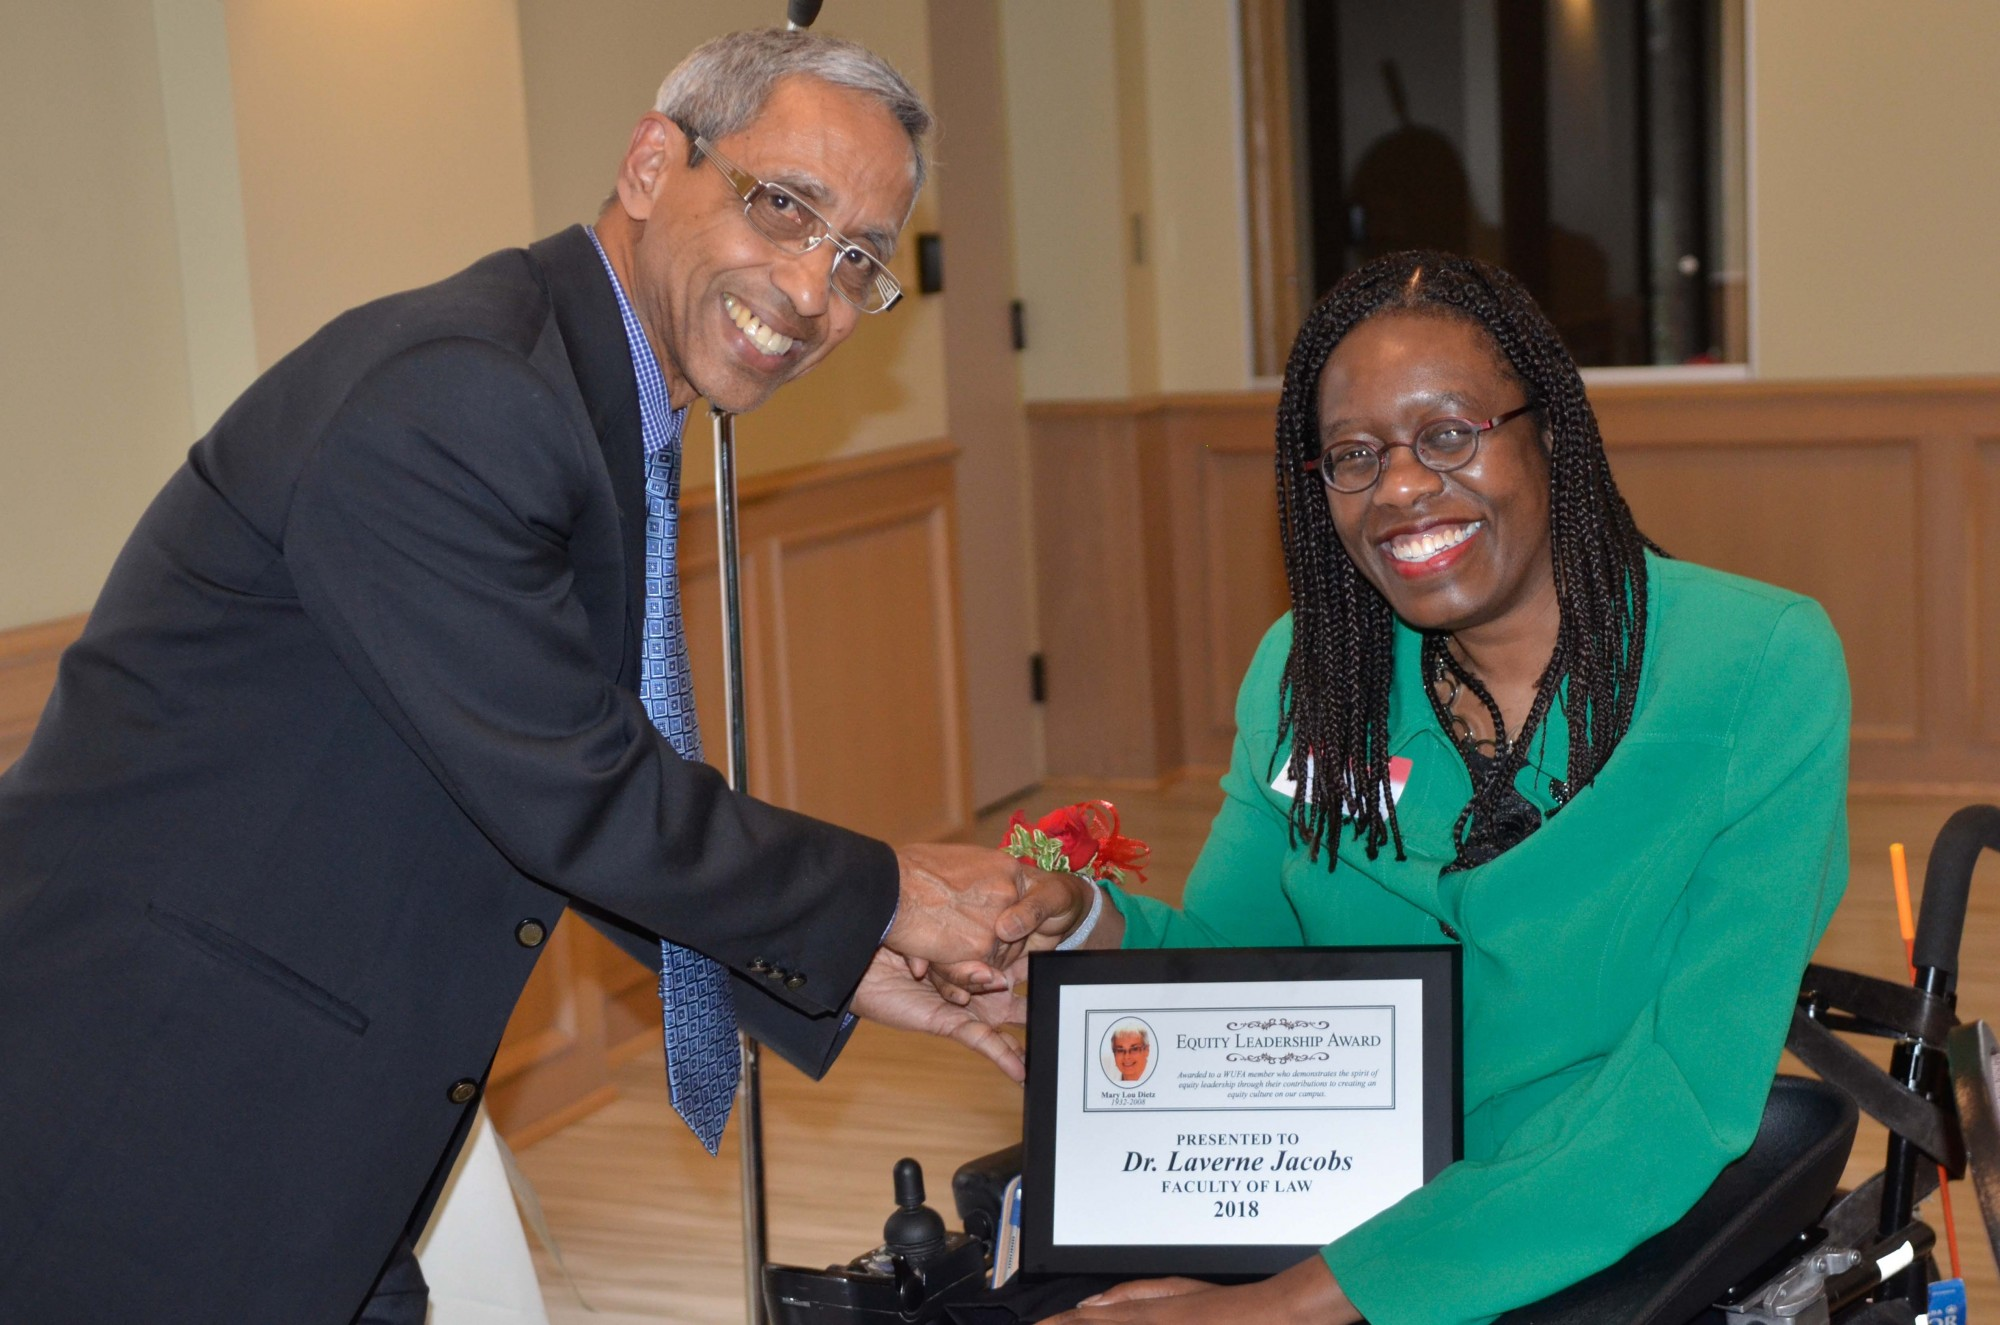 Professor Laverne Jacobs receives the Mary Lou Dietz Equity Leadership Award